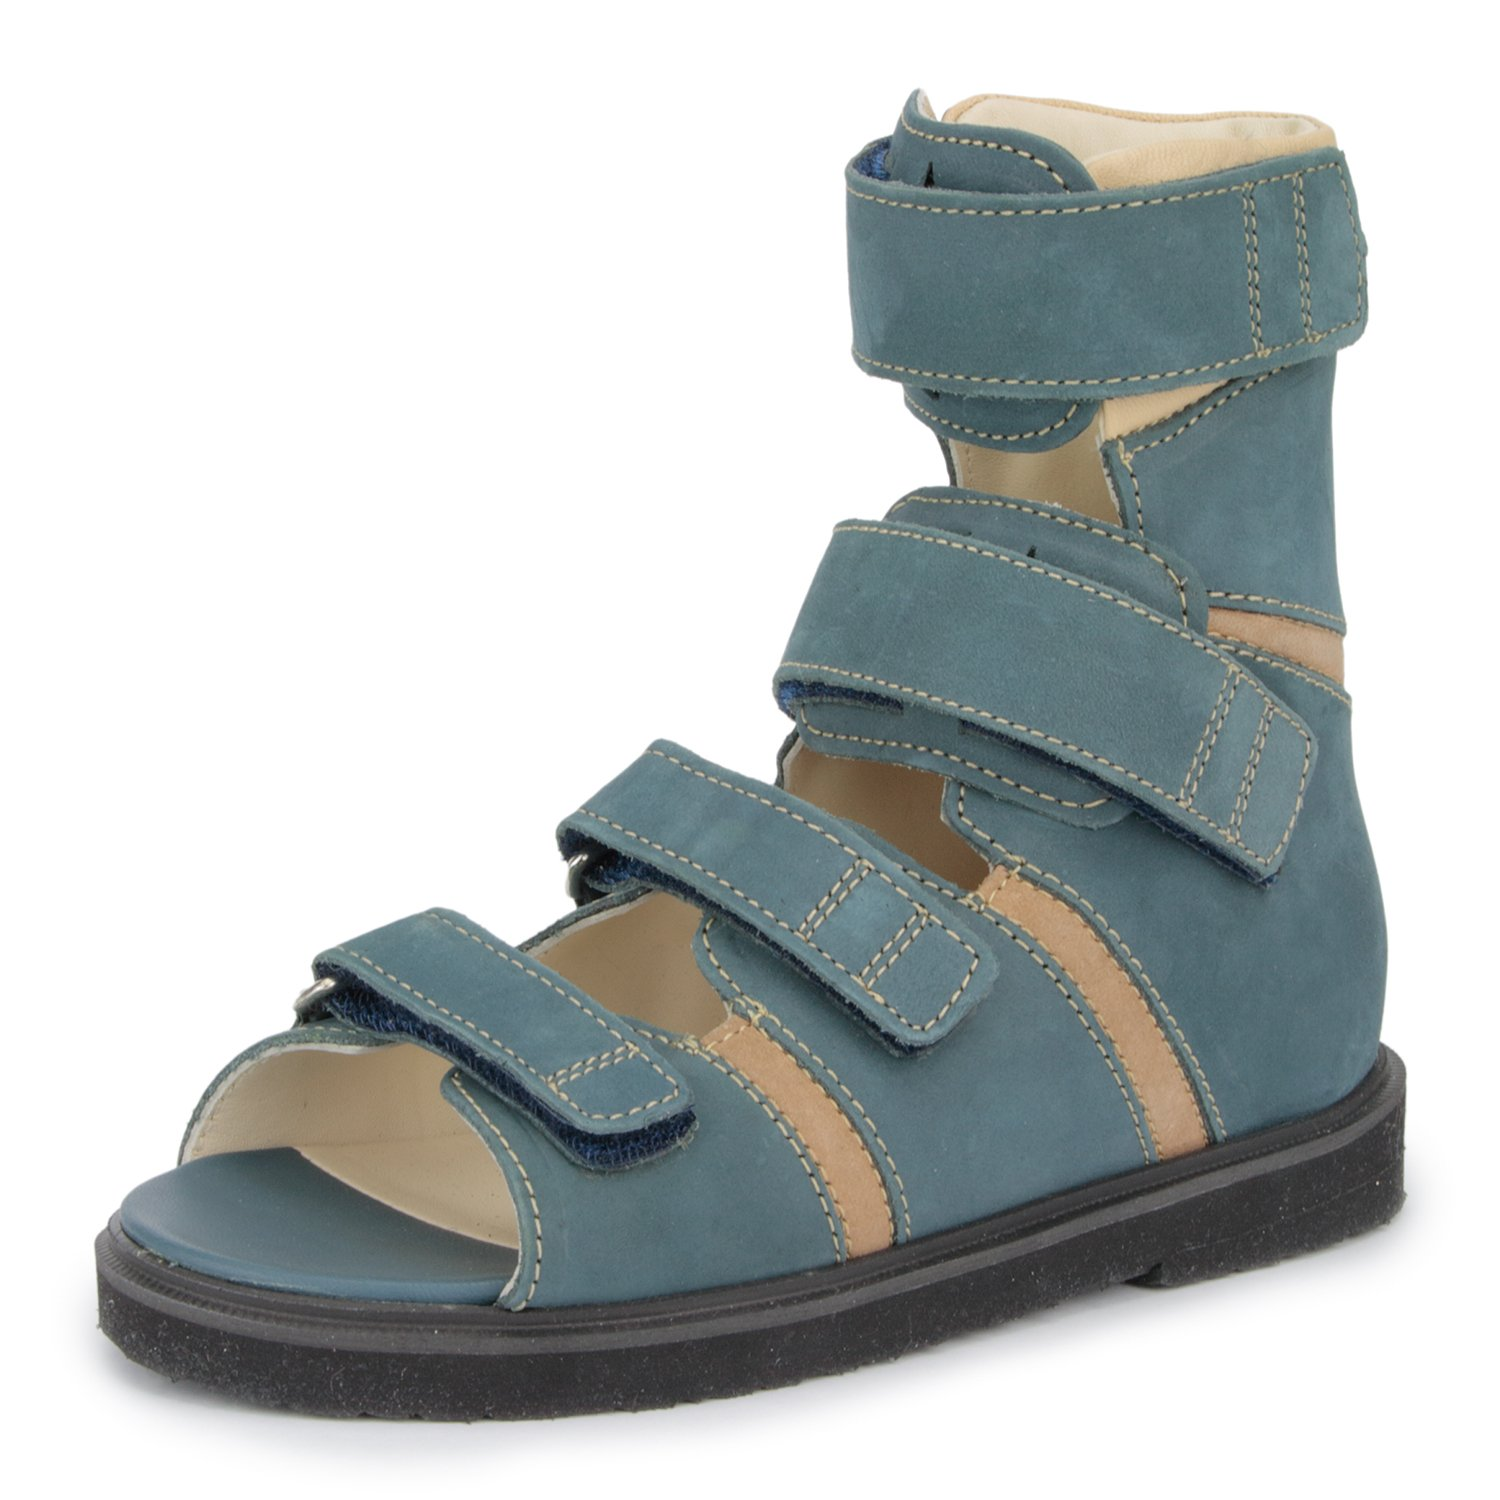 Memo Basic 1CH Suede CP Kids AFO Brace Sandal, 12.5 Little Kid M (30) by Memo (Image #1)